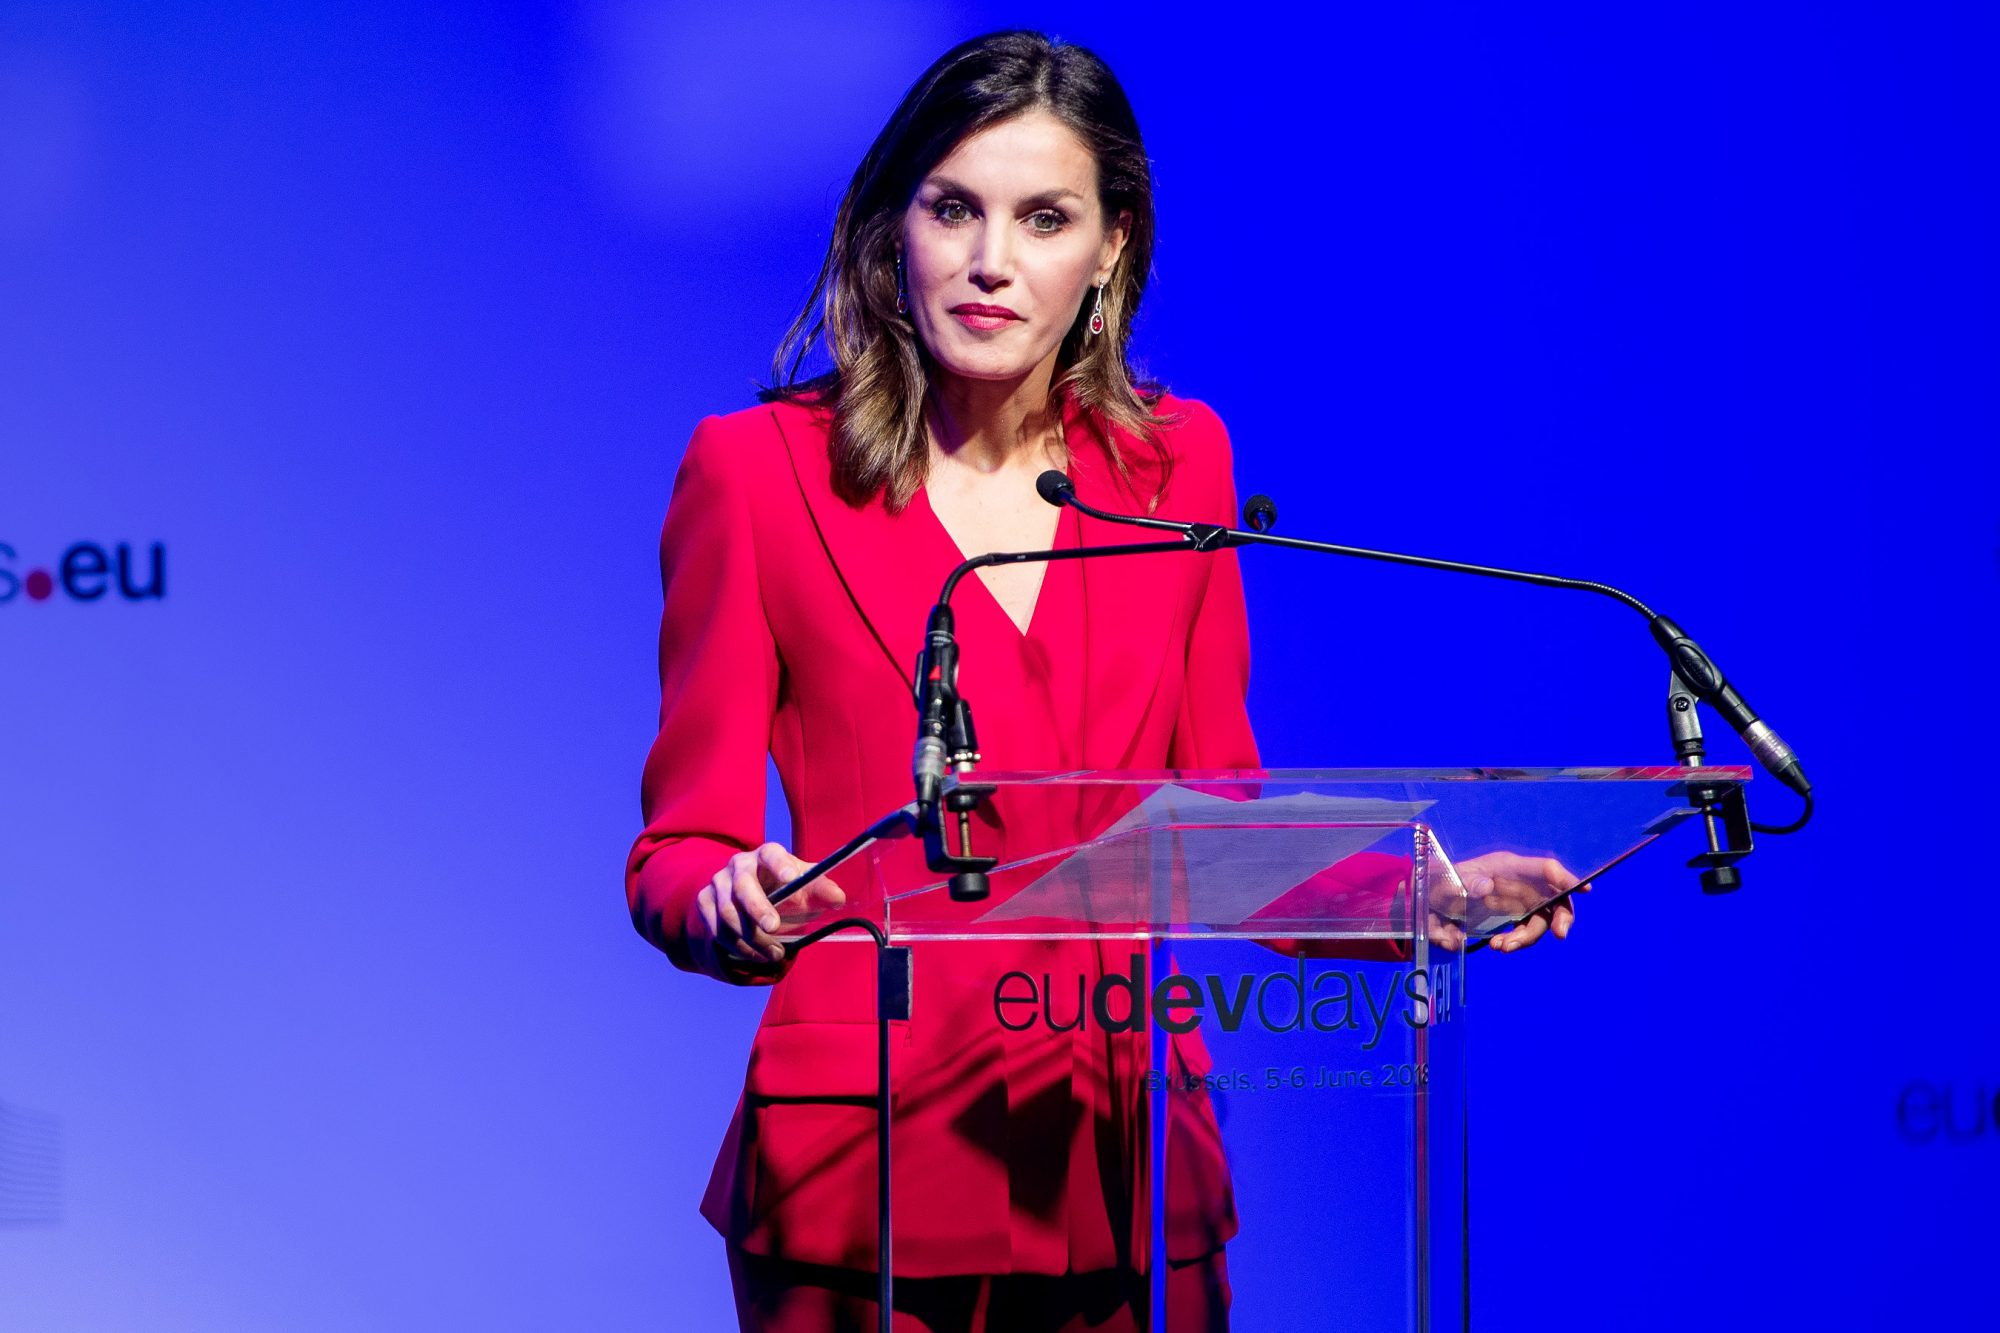 European Development days, Brussels, Belgium - 05 Jun 2018